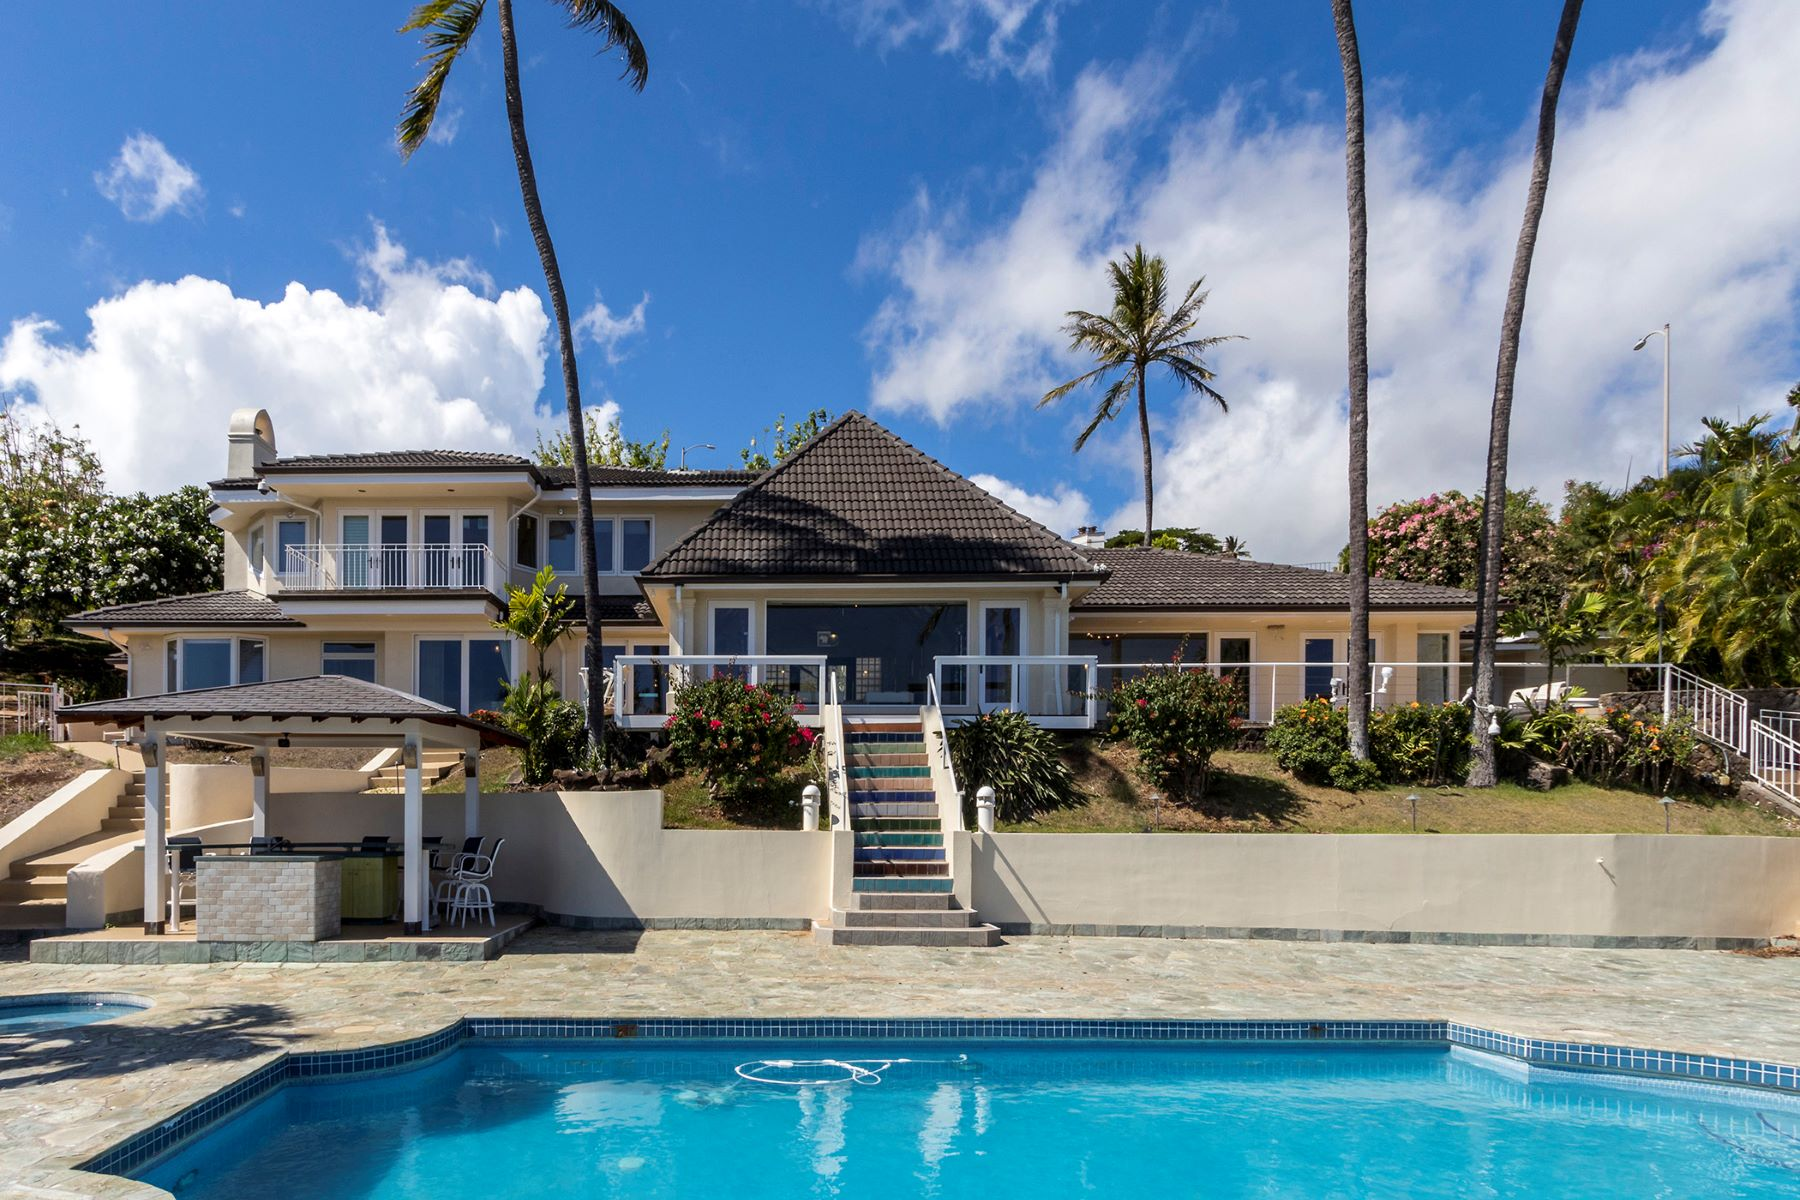 Single Family Homes for Active at Single Family Home, Hawaii Loa Ridge, Ocean View, Luxury Home 398 Puuikena Dr Honolulu, Hawaii 96821 United States